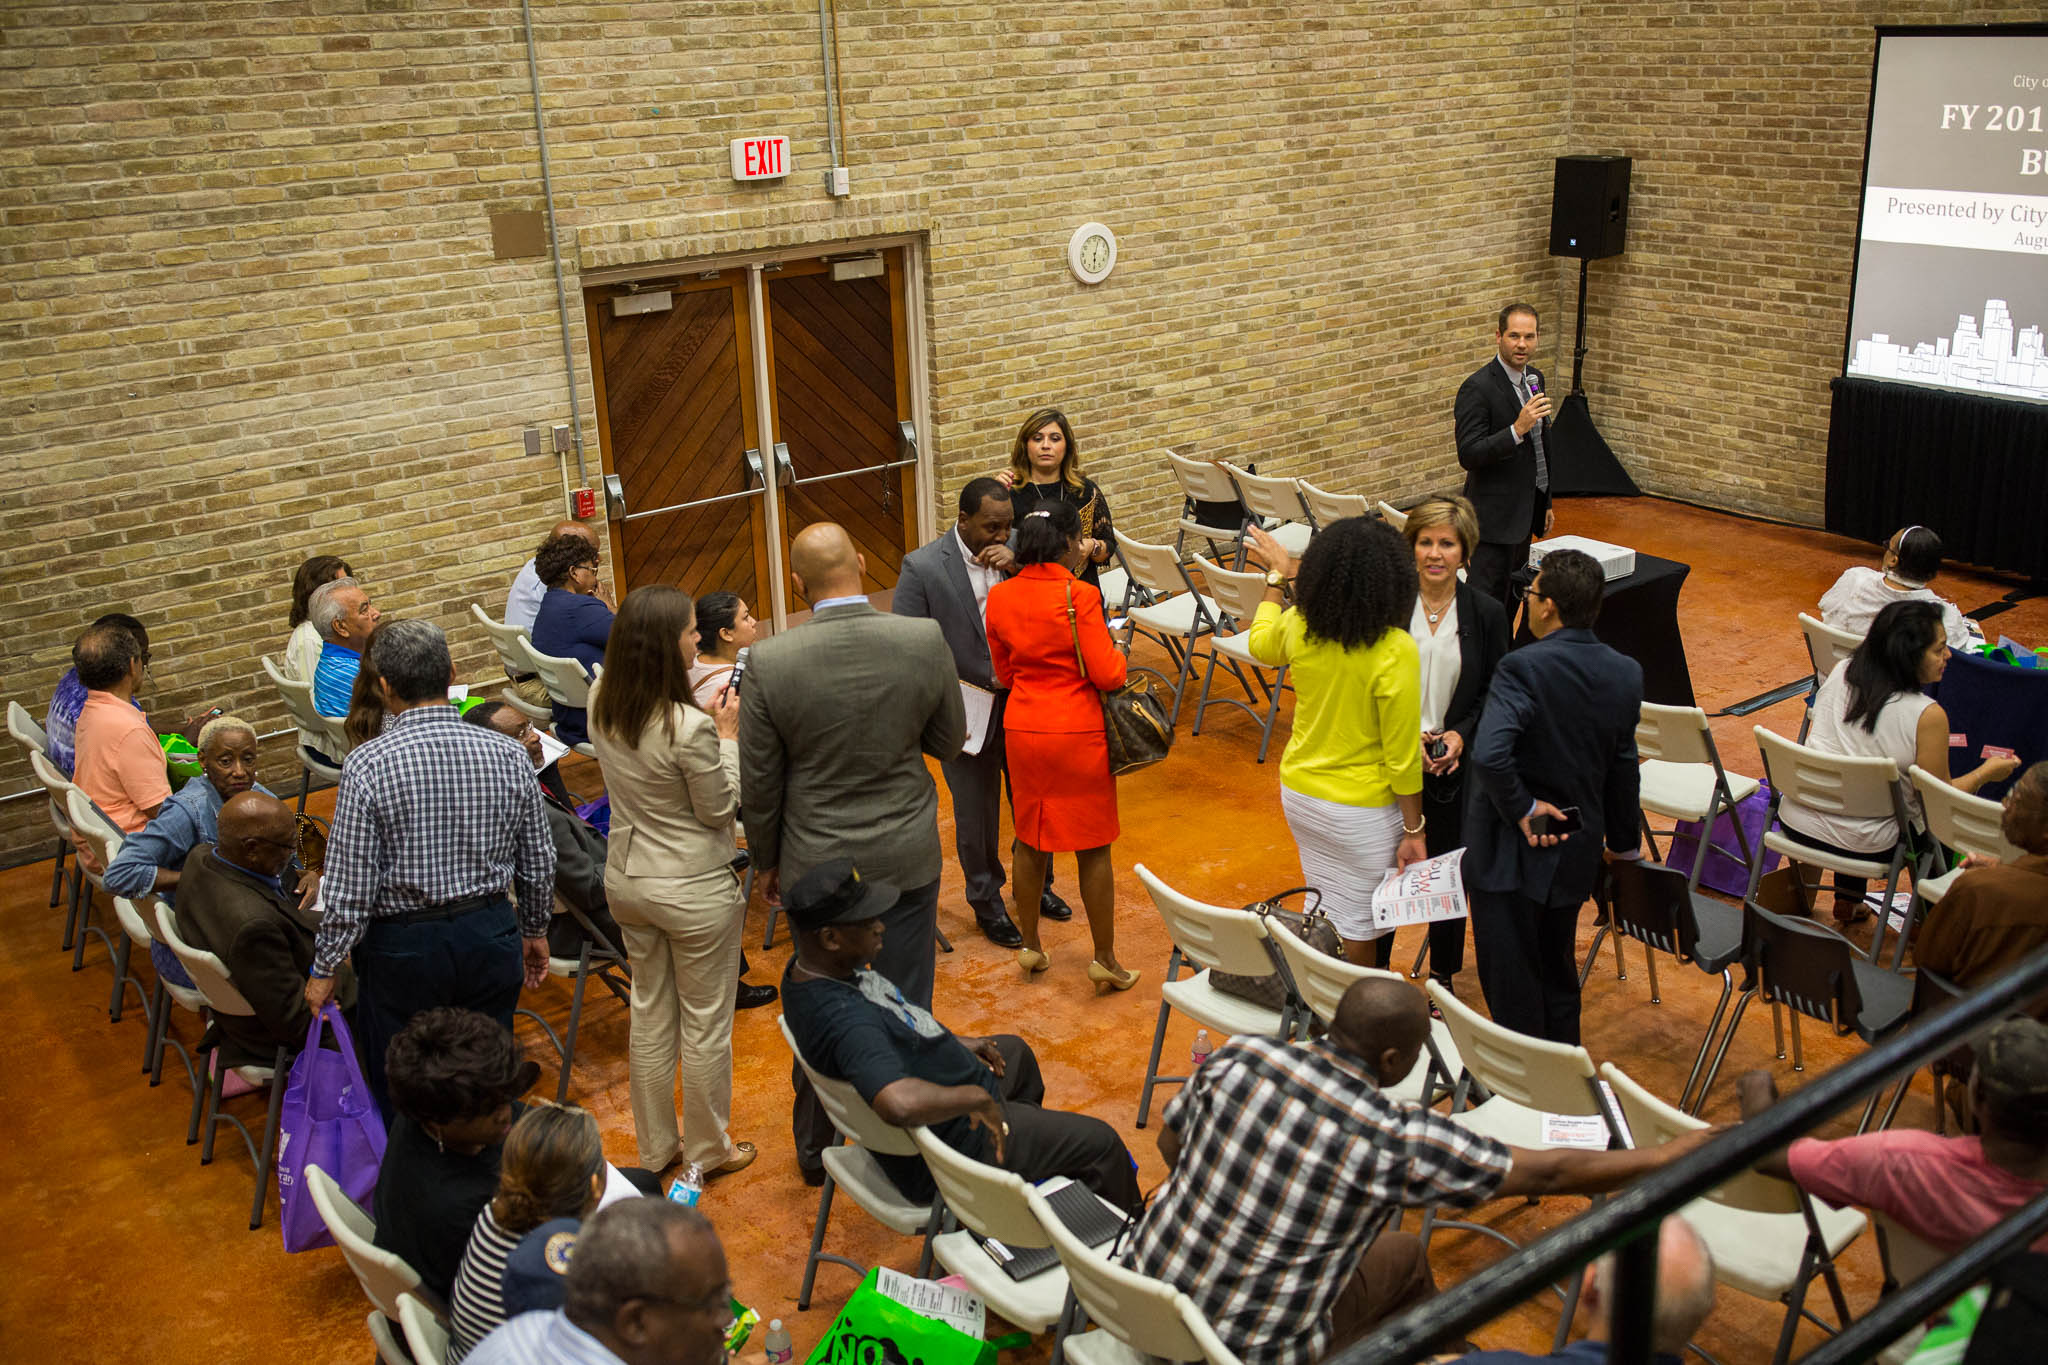 Citizens and public officials gather at the Claude Black Community Center to hear the proposed 2017 city budget. Photo by Scott Ball.